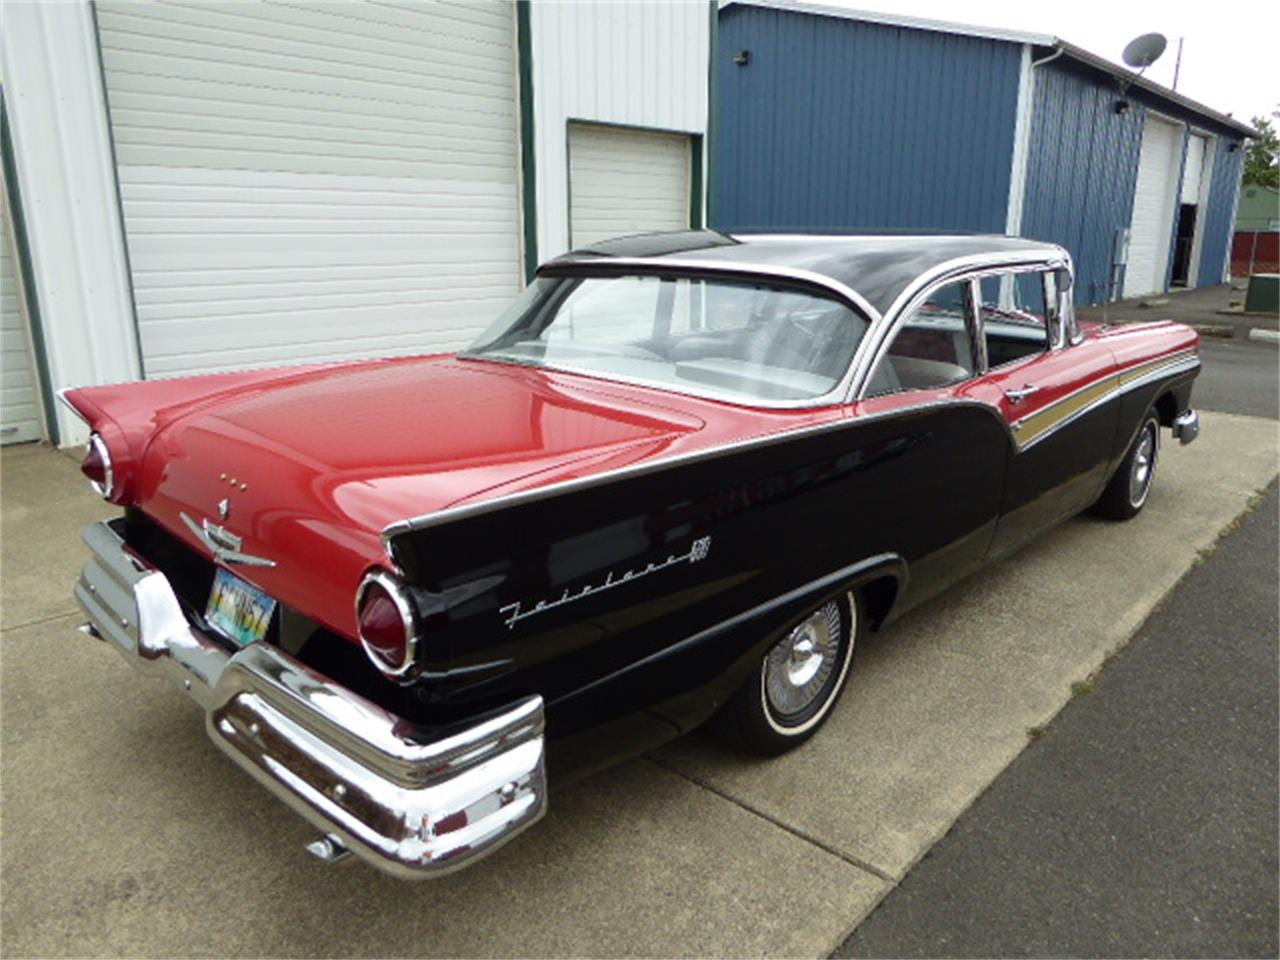 Large Picture of Classic '57 Ford Fairlane 500 - $18,900.00 Offered by West Coast Collector Cars - NUQP